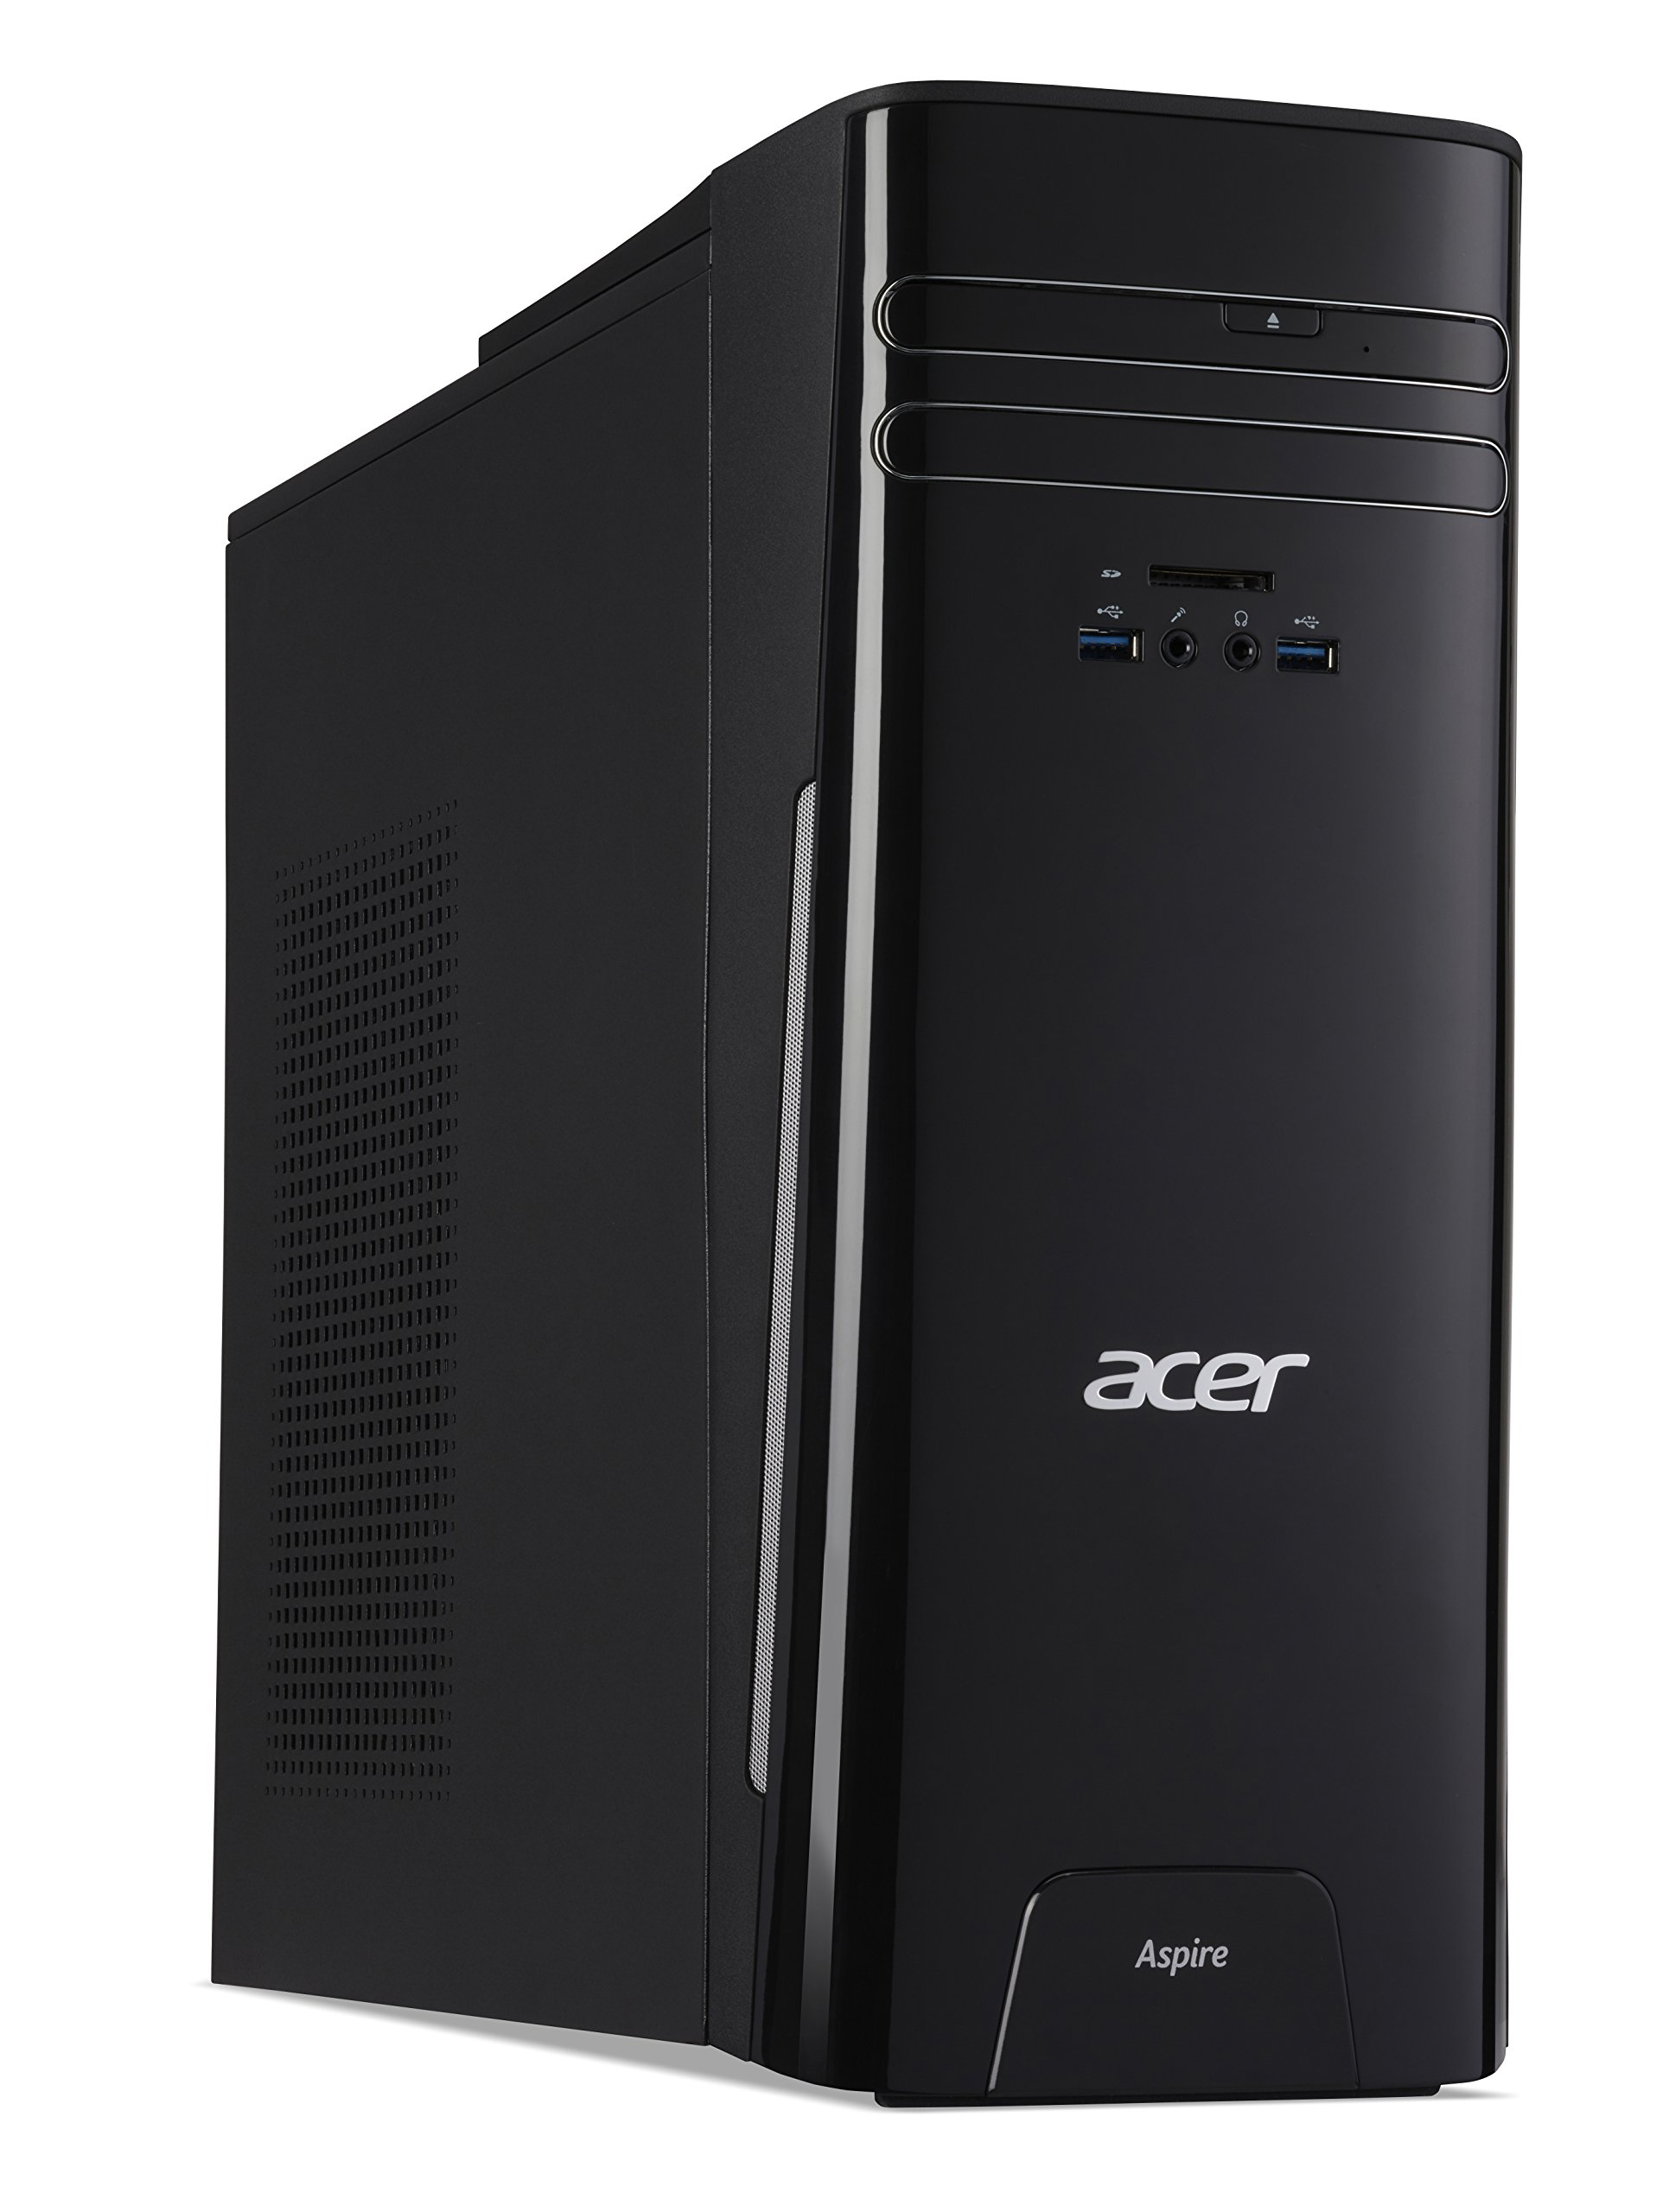 Acer Aspire Desktop, 7th Gen Intel Core i3-7100, 8GB DDR4, 1TB HDD, Windows 10 Home, TC-780-ACKi3 by Acer (Image #3)